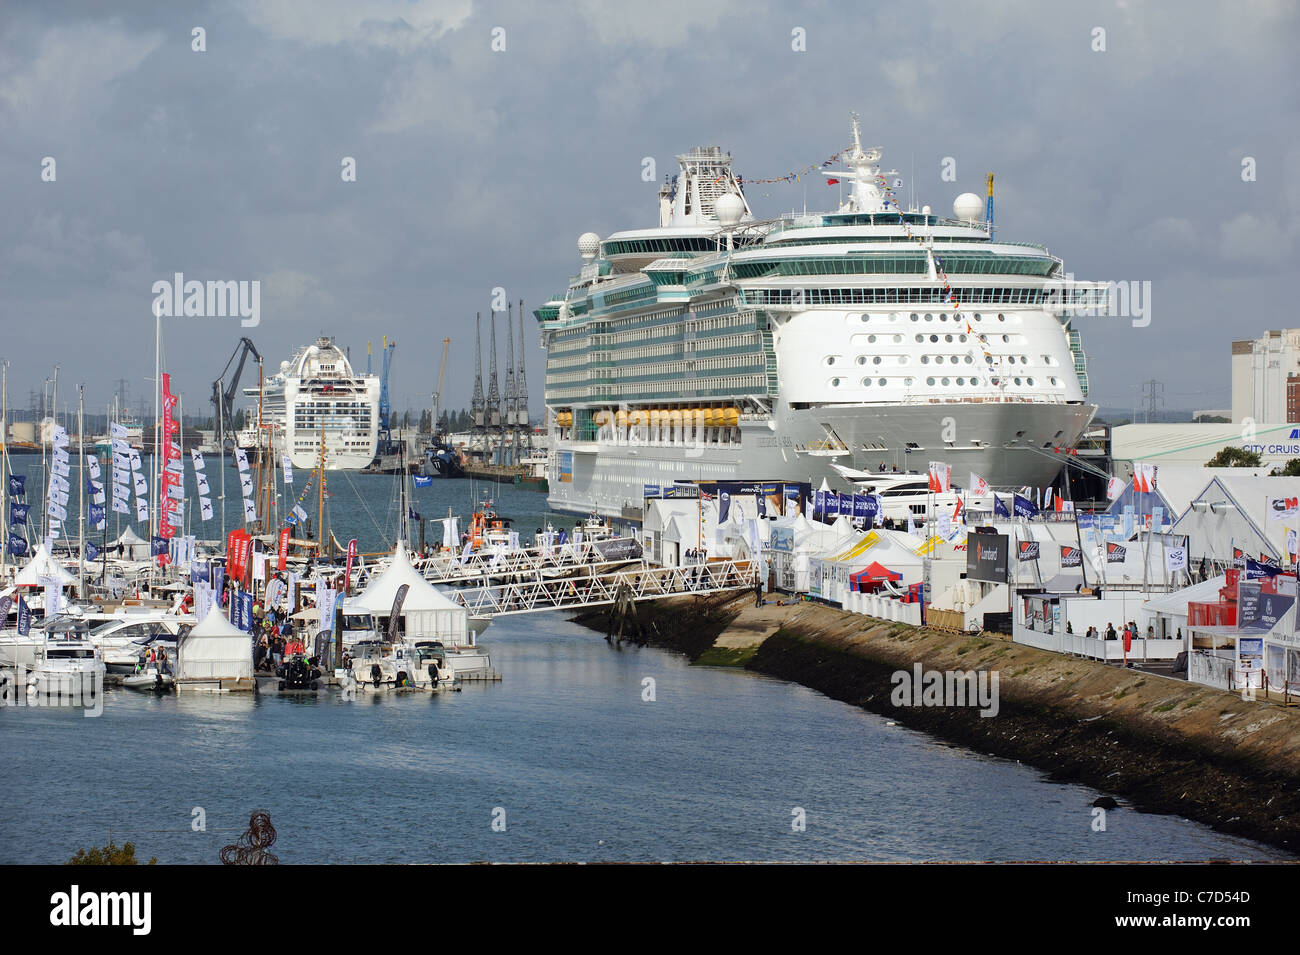 Southampton Boat Show 2011 floating pontoons form a marina providing 2kms of berthing for exhibitors boats - Stock Image